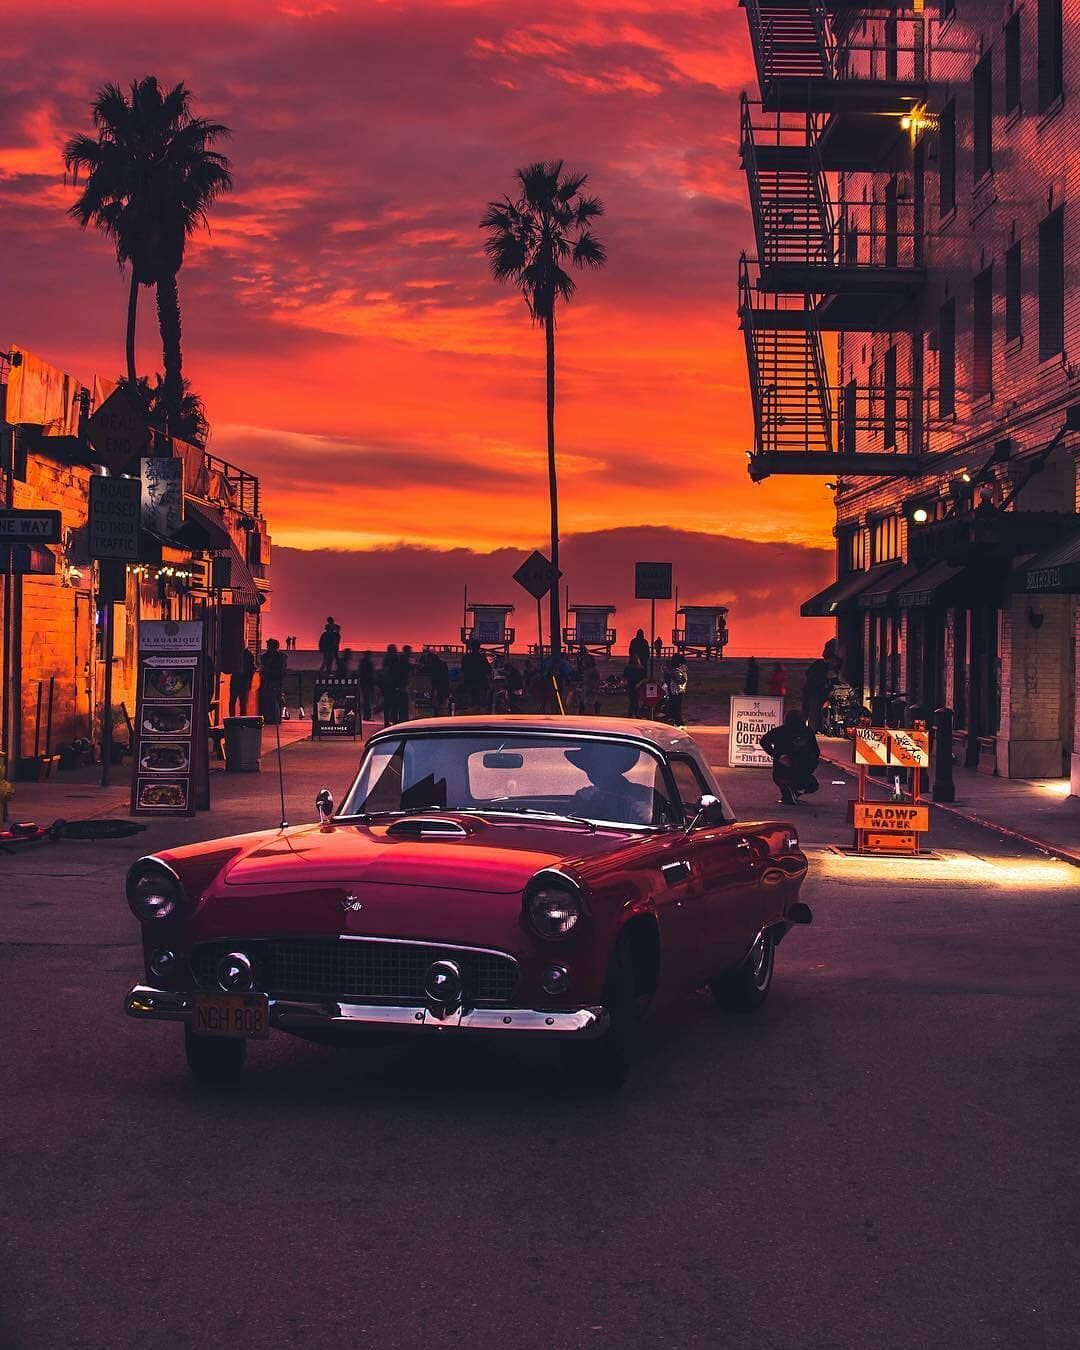 The Visual Mag On Instagram Which One Is Your Favourite One Photos Dest0n Selection Merveterziglu F Classic Cars Vintage California Sunset Retro Cars